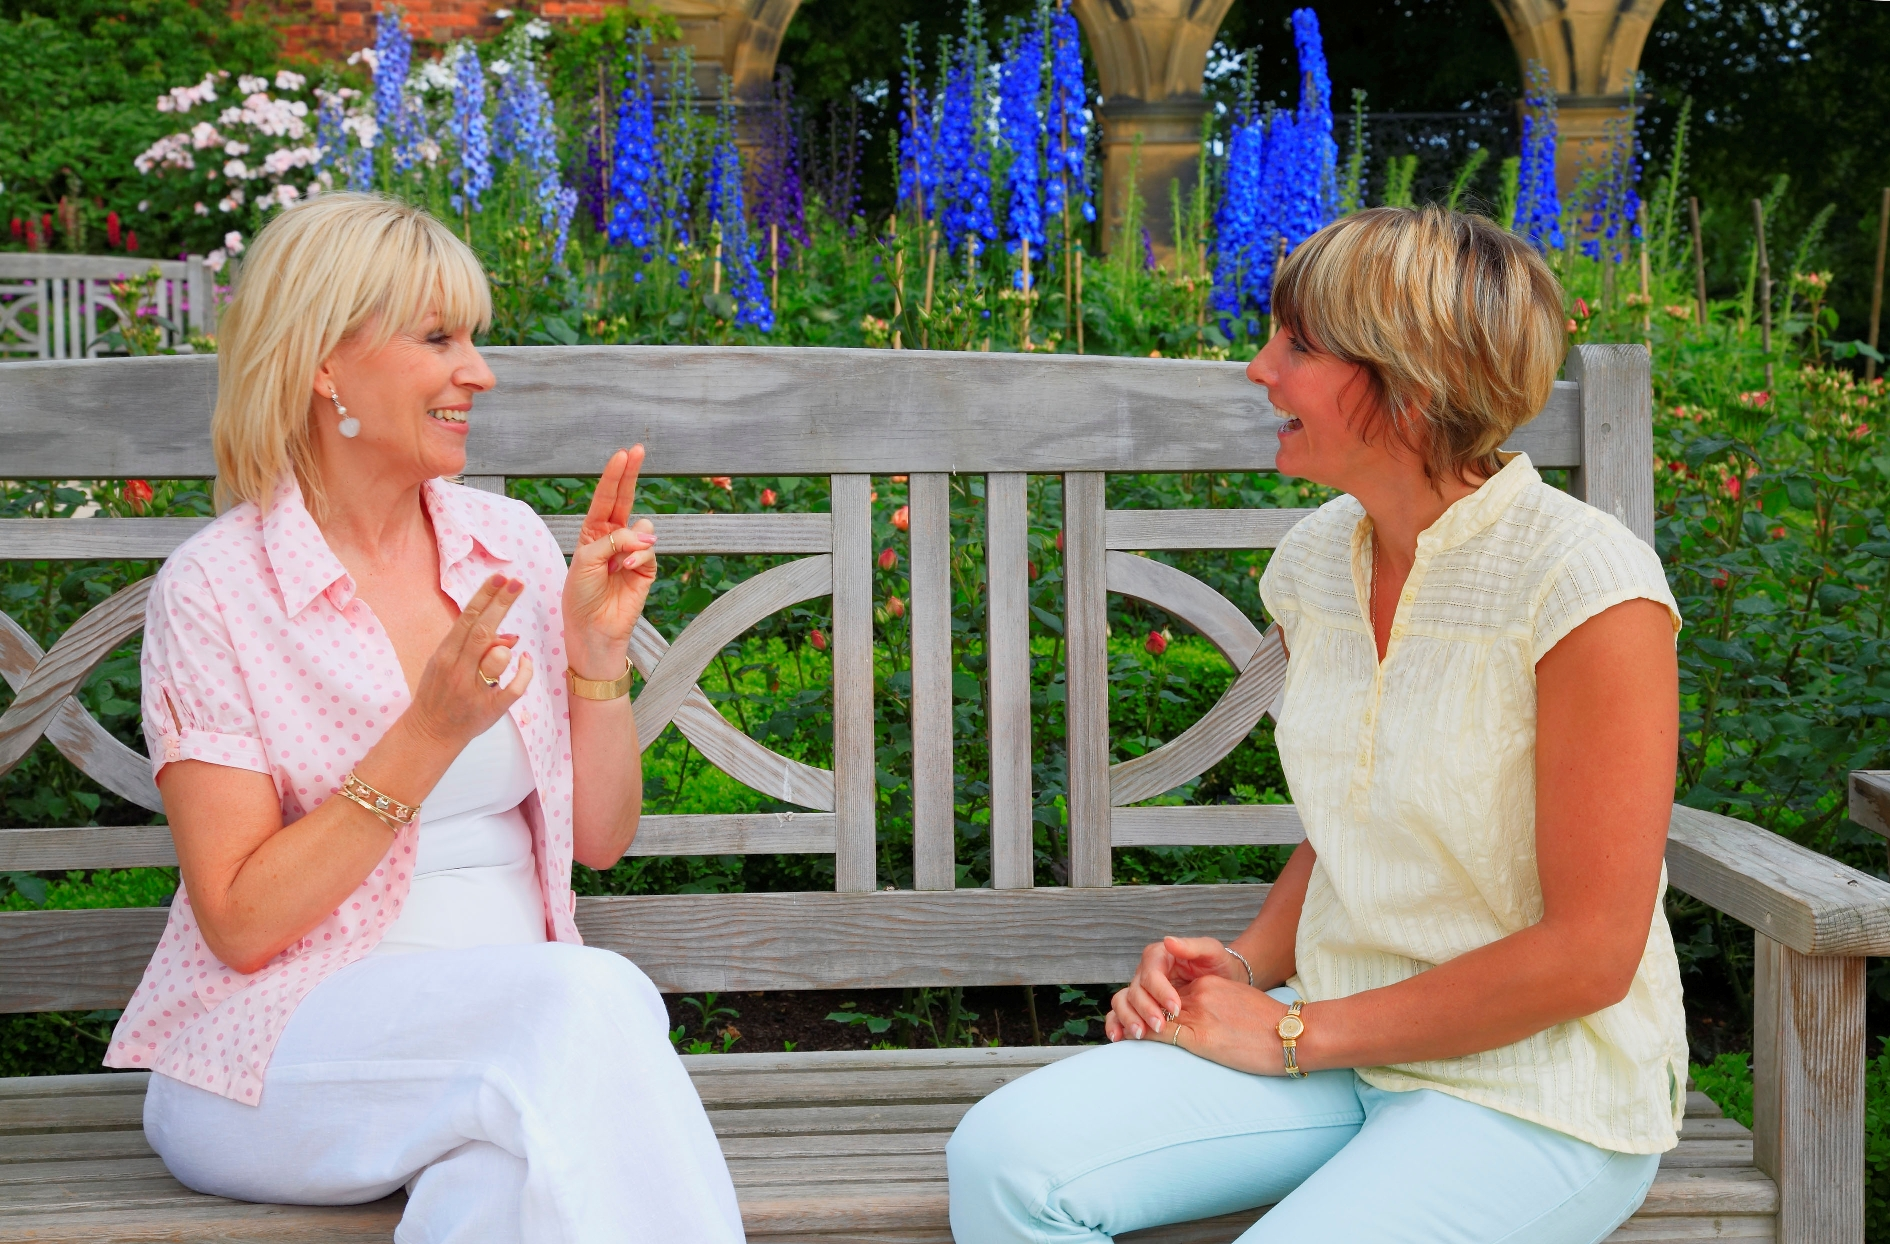 Two women, sat on a wooden bench, conversing in sign language within the formal floral surroundings of the Alnwick Garden. This developing garden is the inspiration of Jane, Duchess of Northumberland whose vision is to develop it into a contemporary garden that integrates water and light into a theatre of gardens.